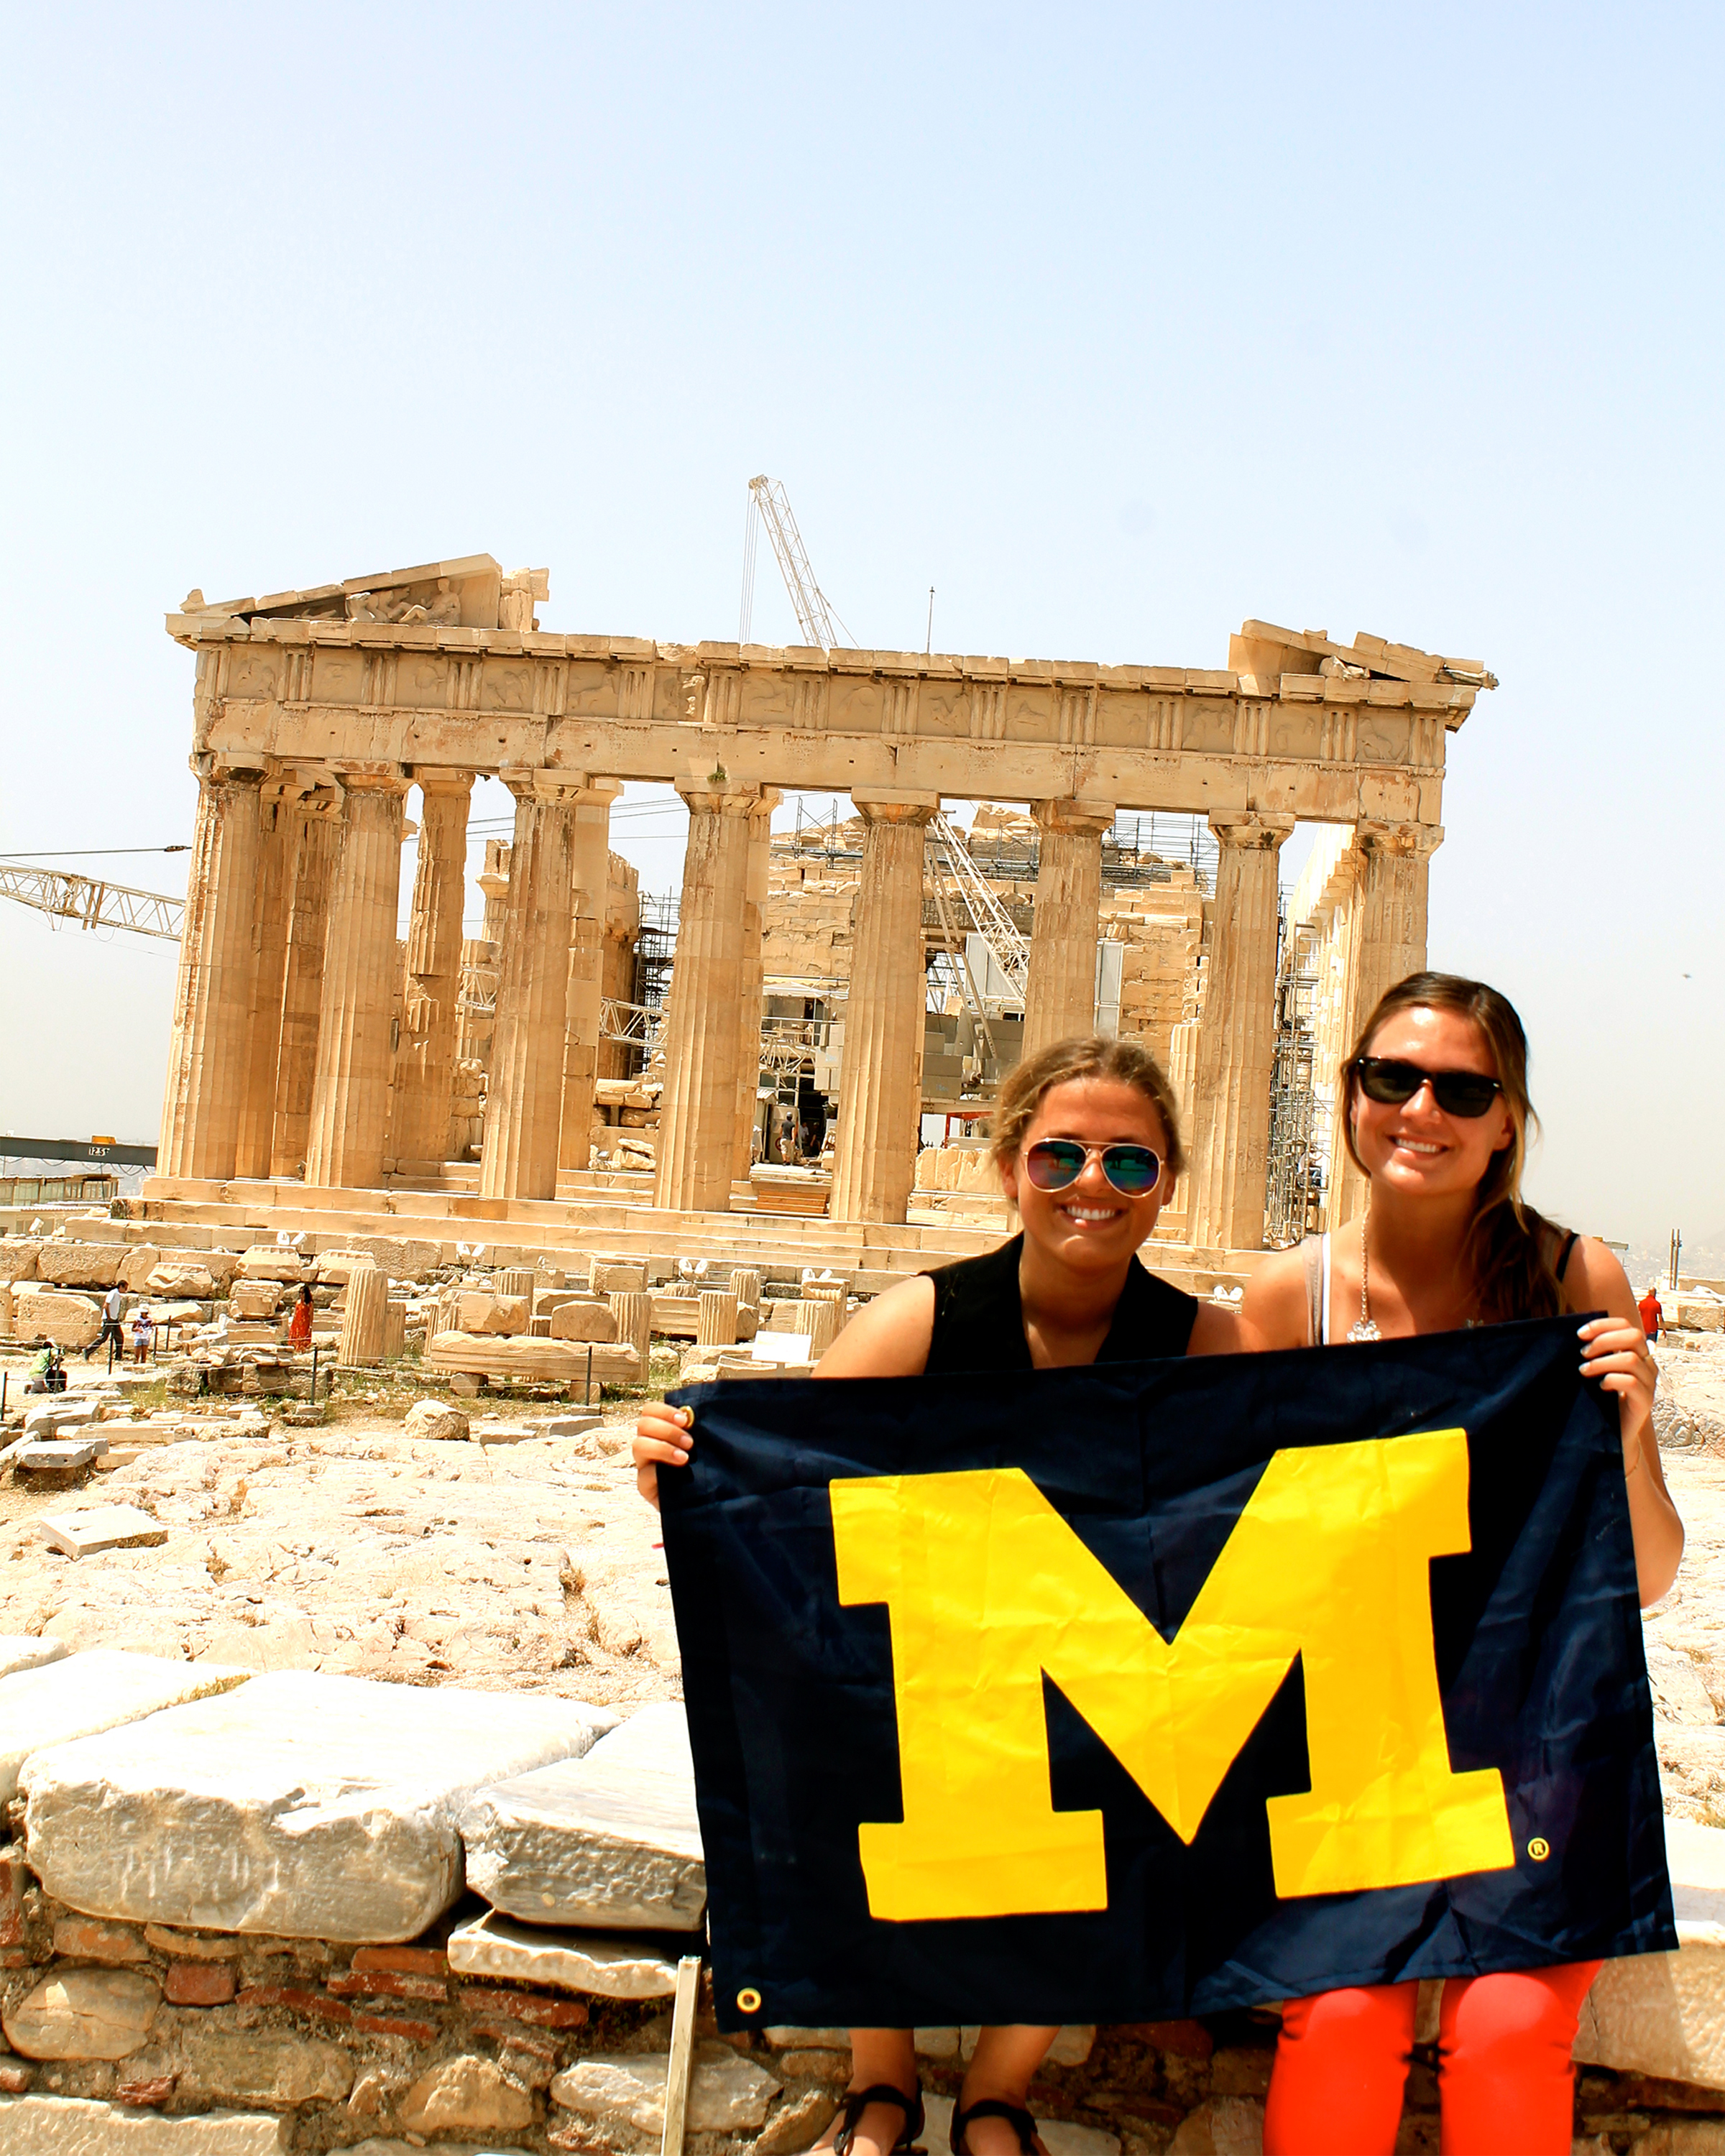 Students visit the Acropolis in Athens, Greece. Image credit: Sara Becker